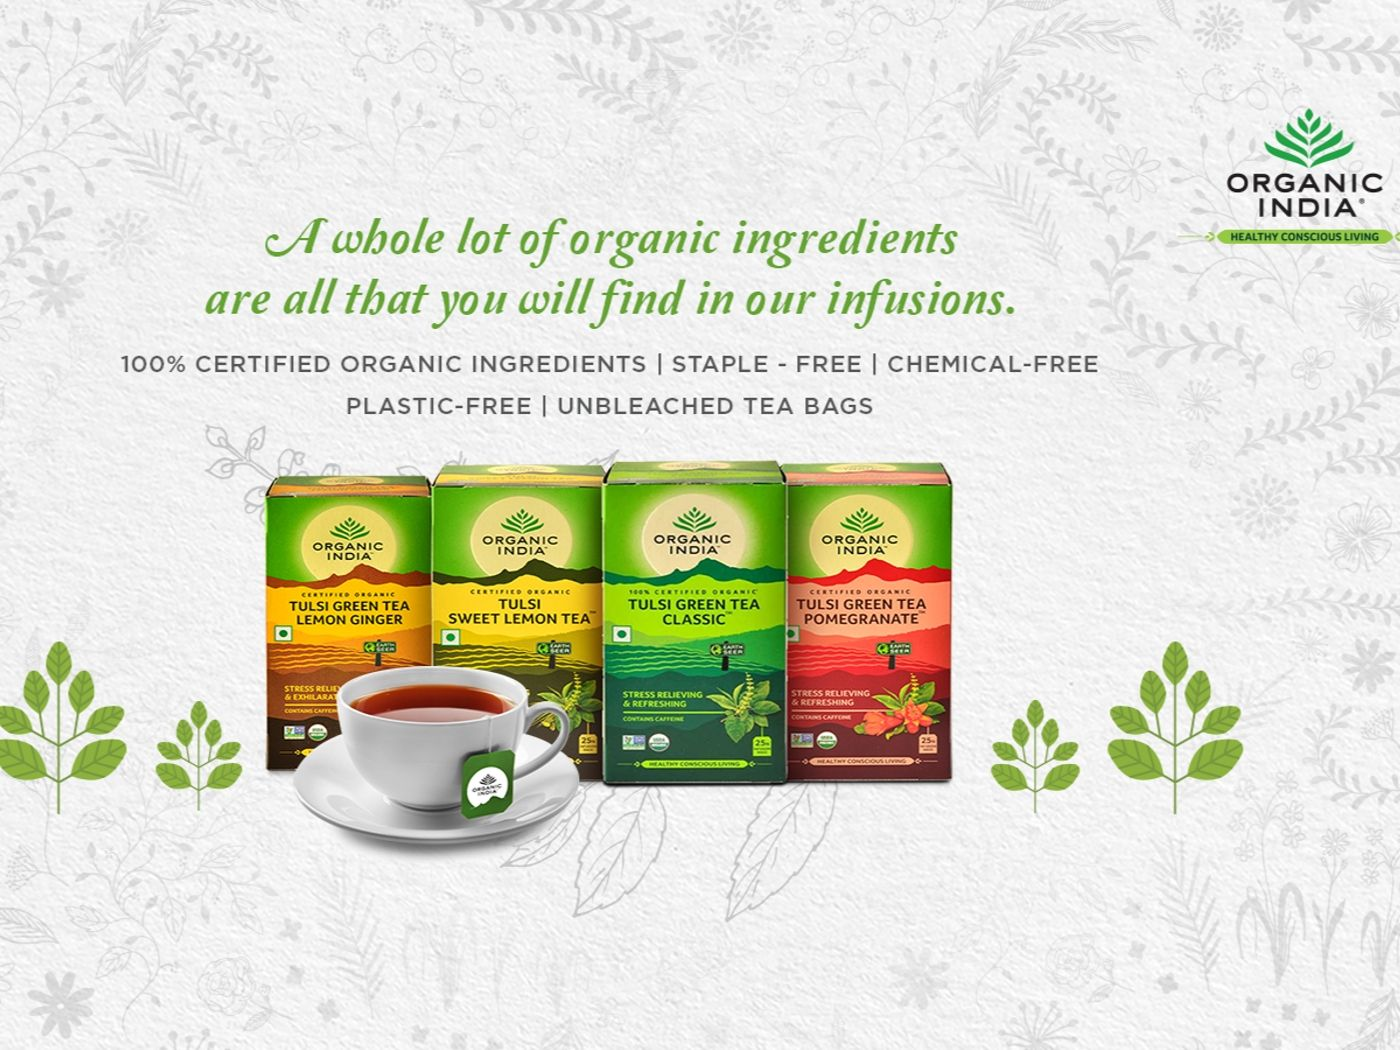 Organic India Featured Image